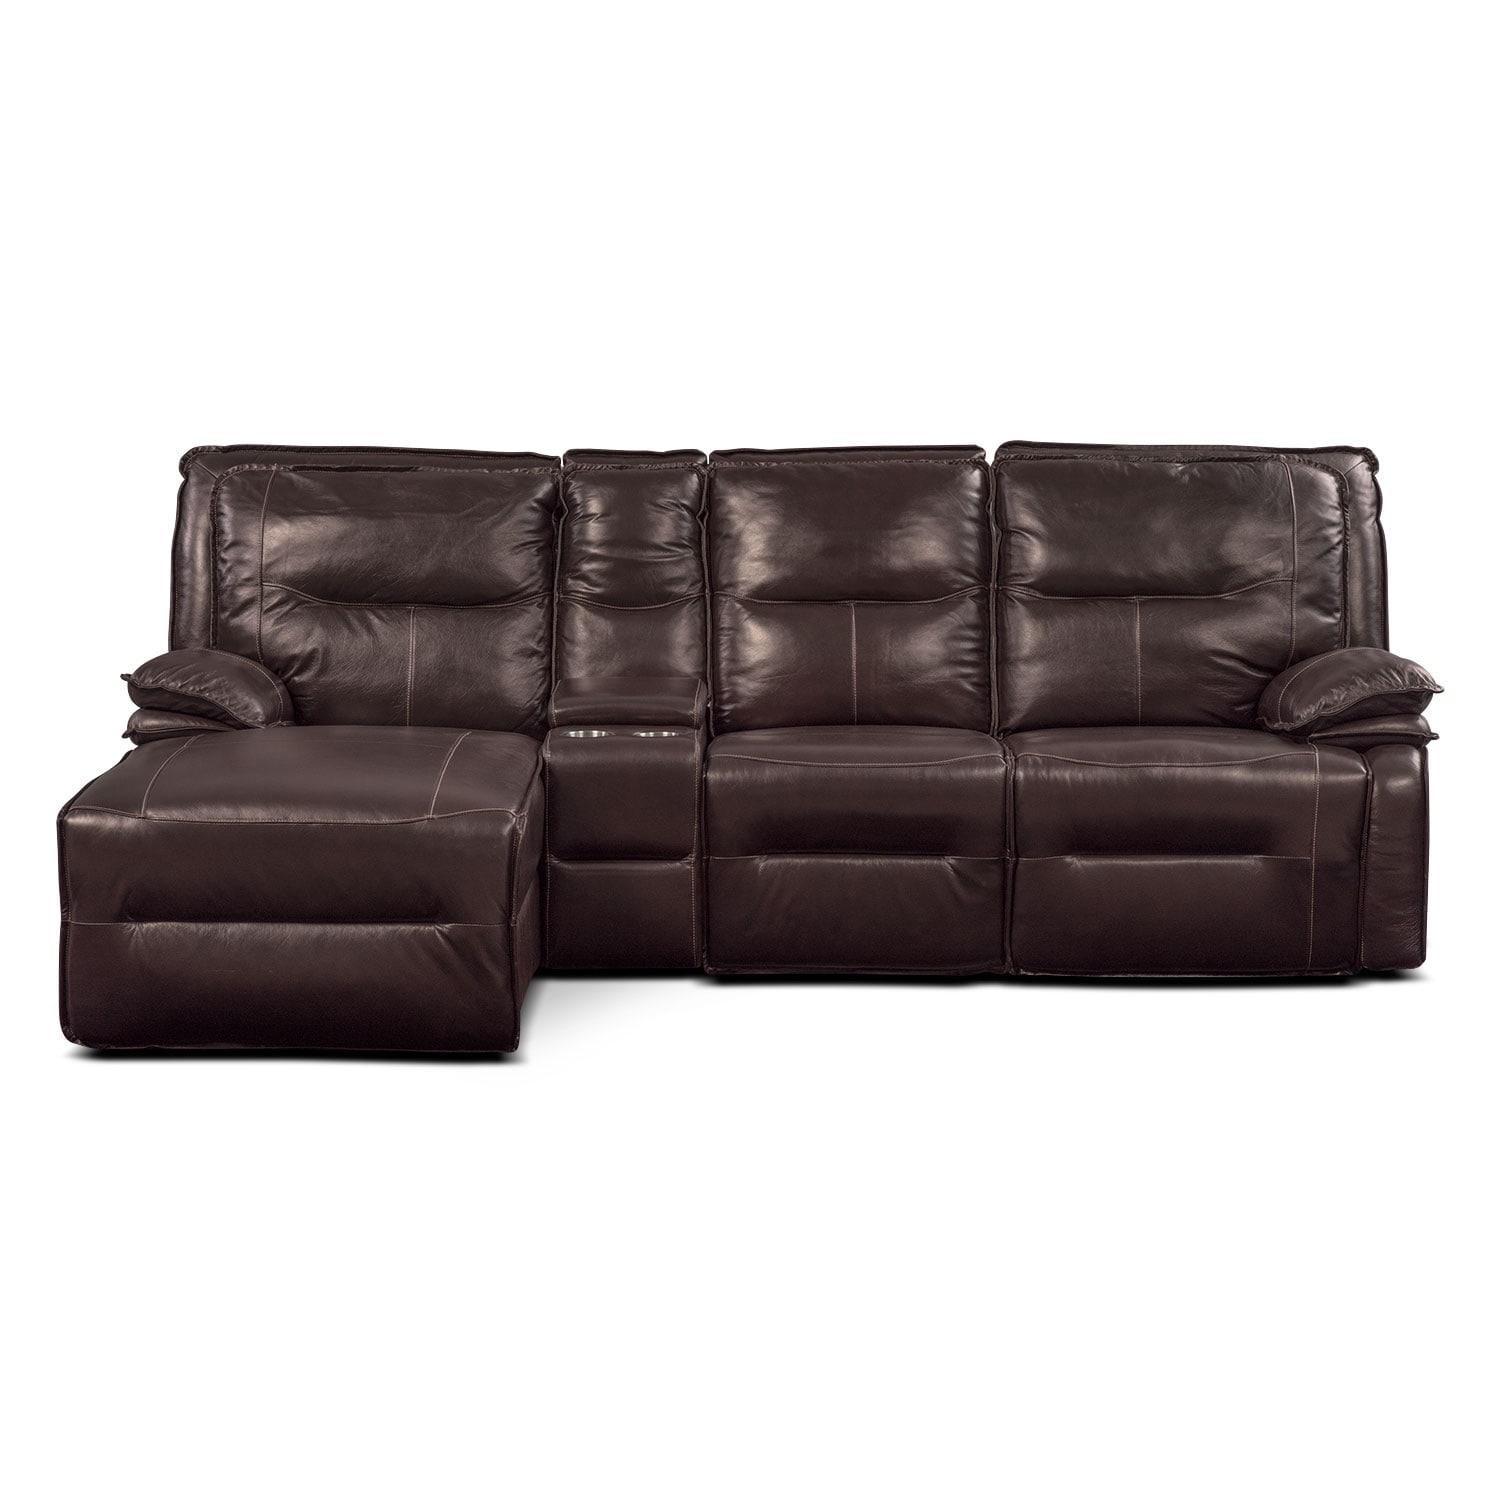 Nikki 4 Piece Power Reclining Sectional with Left Facing Chaise